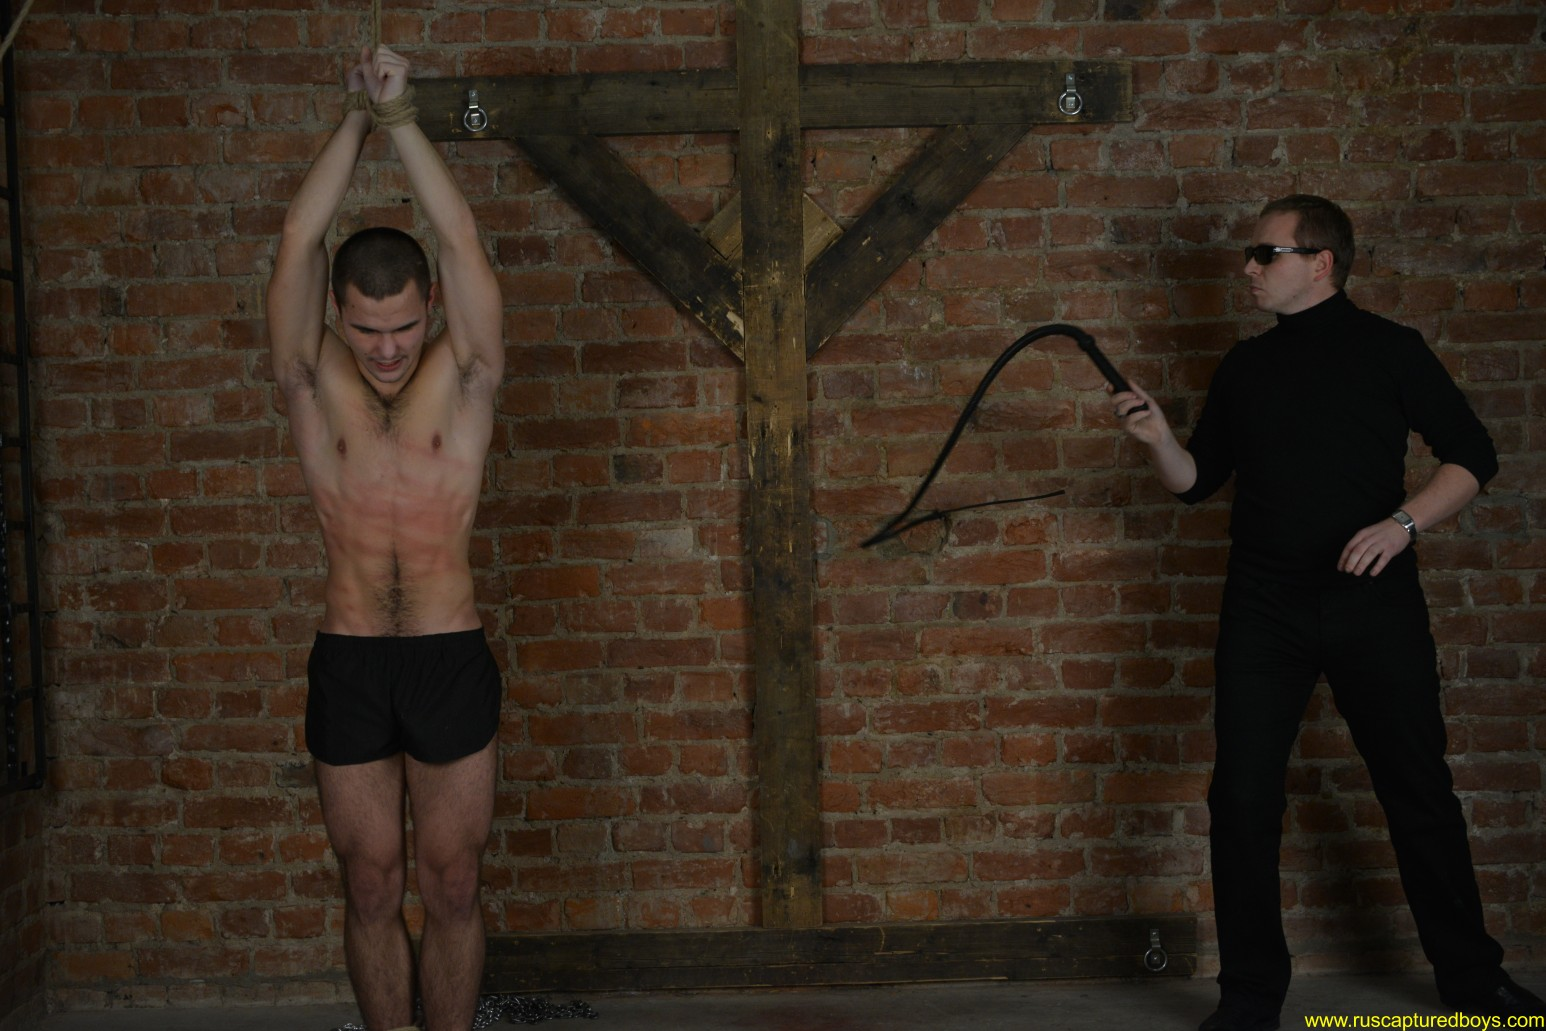 from Franco gay male dungeon rental